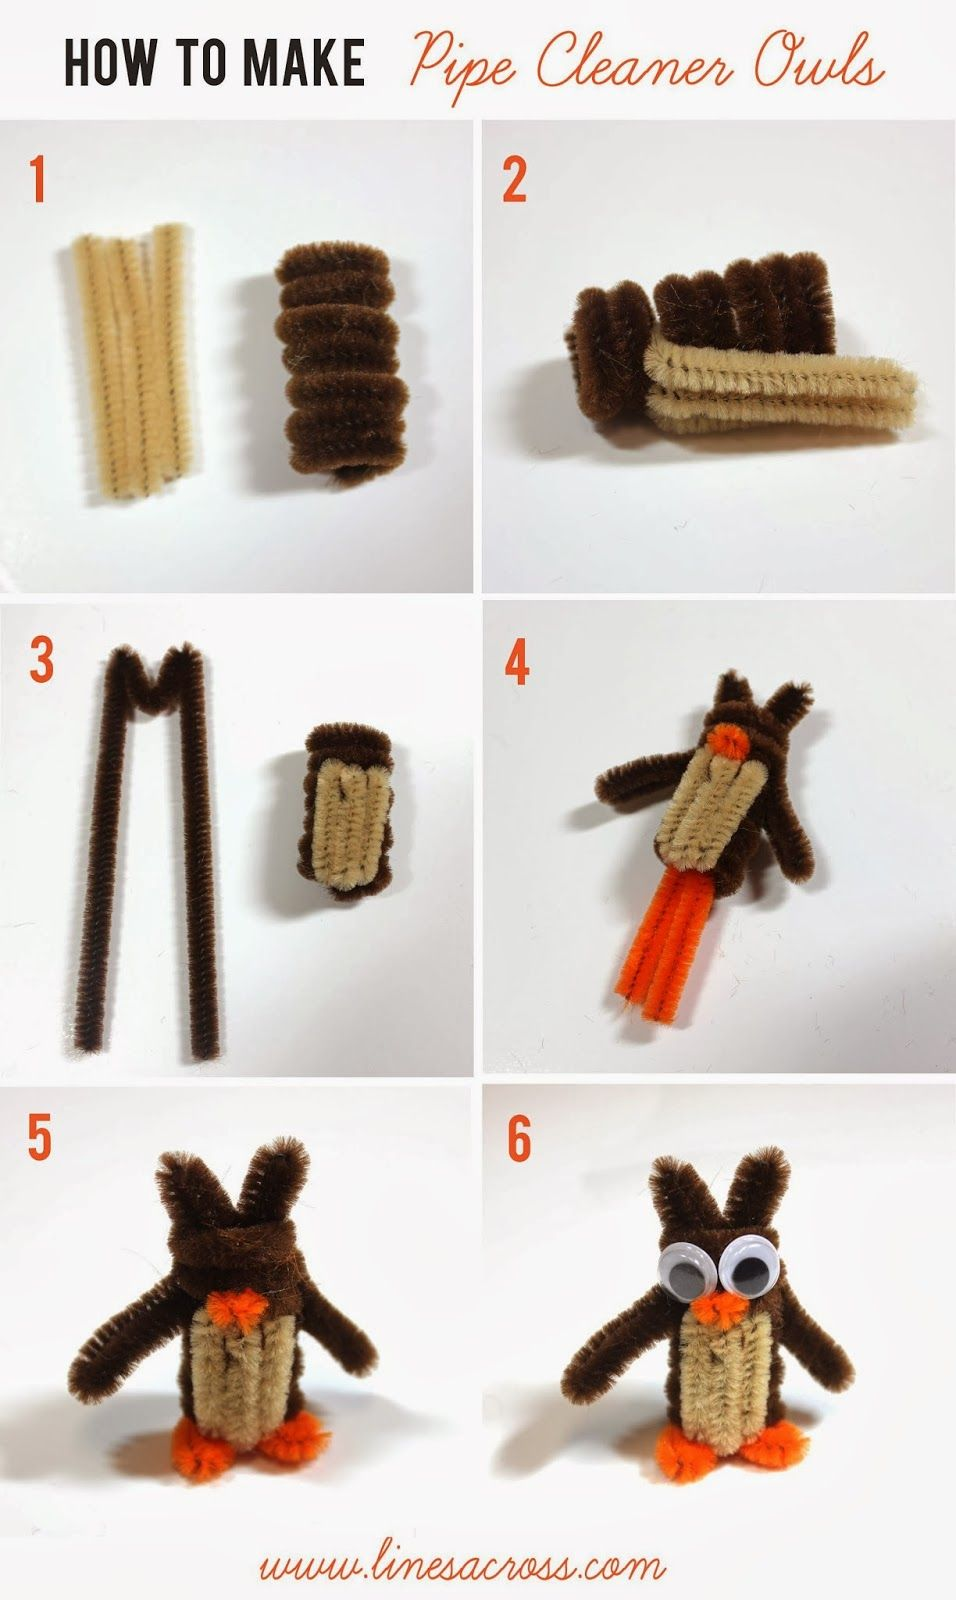 Uncategorized Pipe Cleaner Animals Instructions share tweet 1 mail its no secret i love making pipe cleaner animals they